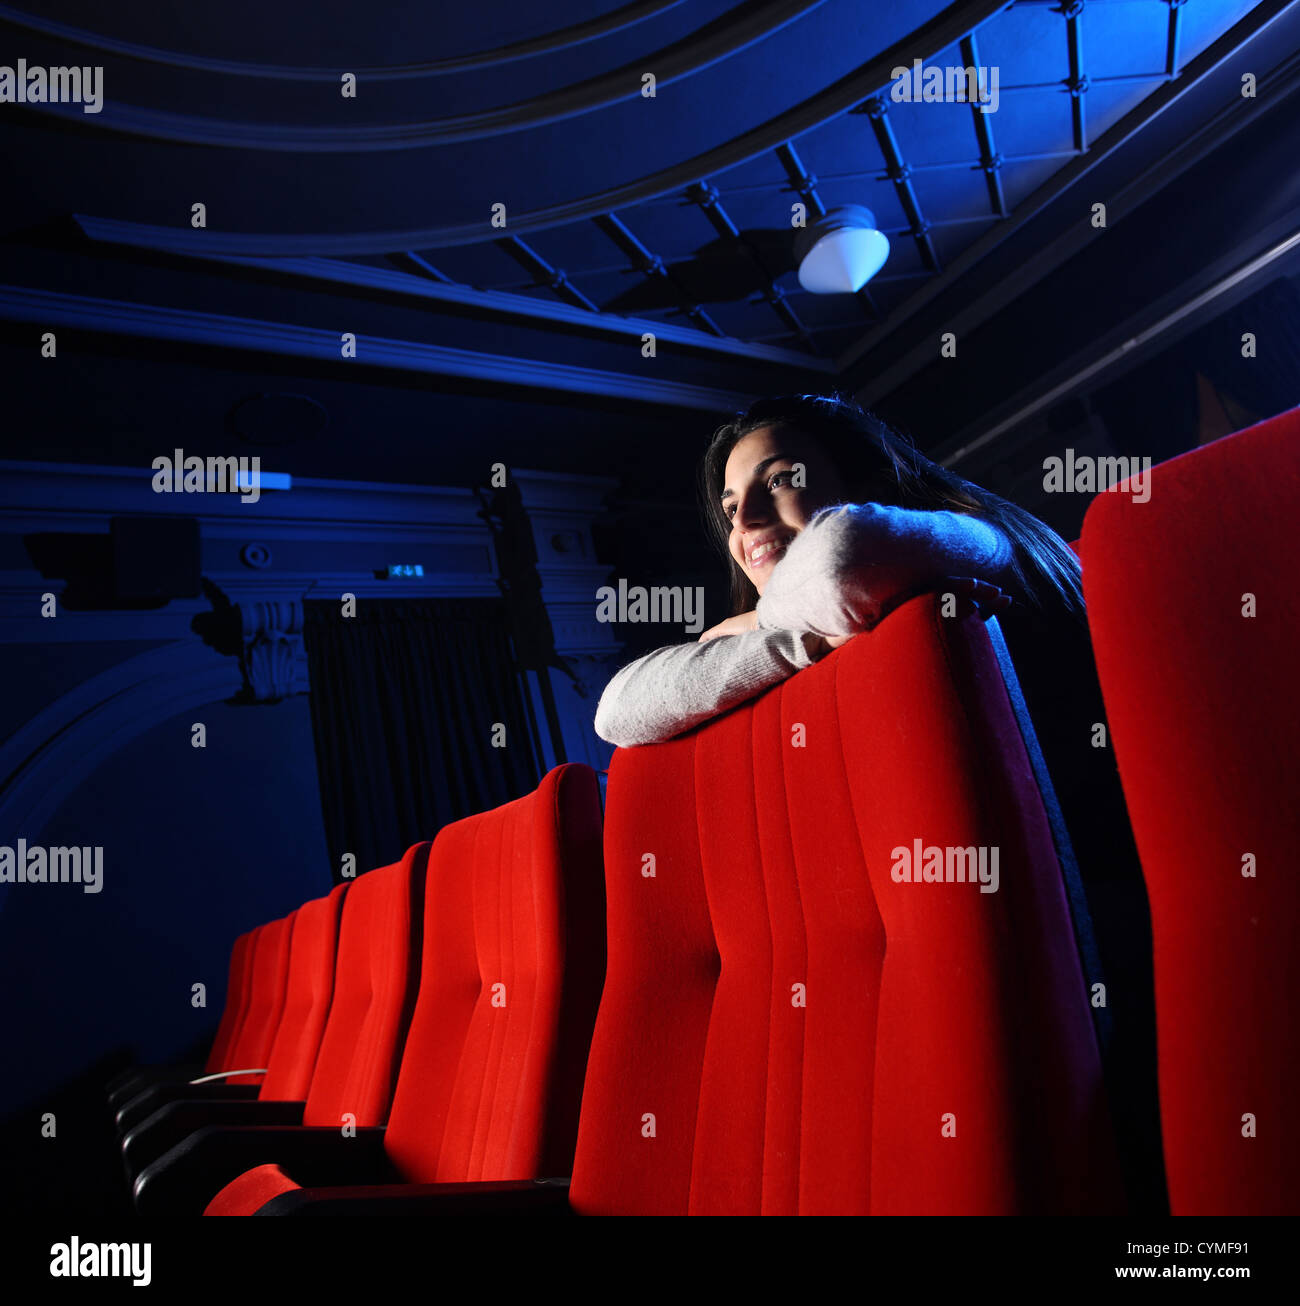 Stock photo dramatic red old fashioned elegant theater stage stock - Portrait Of A Girl In A Movie Theater Stock Image